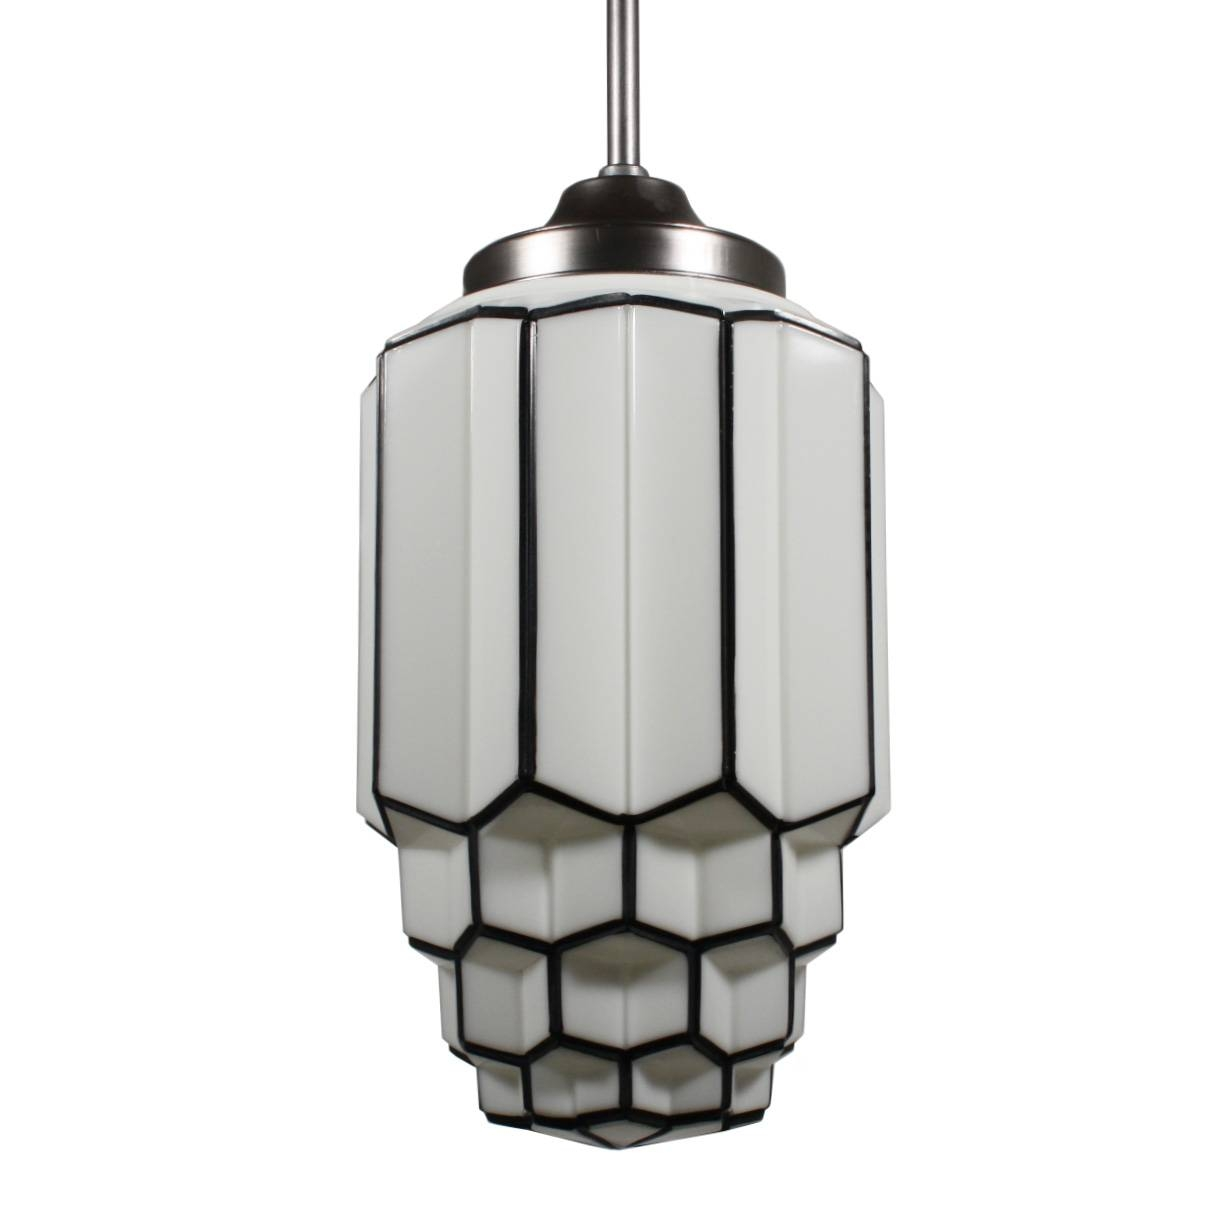 Antique Art Deco Pendant Light With Skyscraper Globe, C. 1930's pertaining to Art Nouveau Pendant Lights (Image 4 of 15)